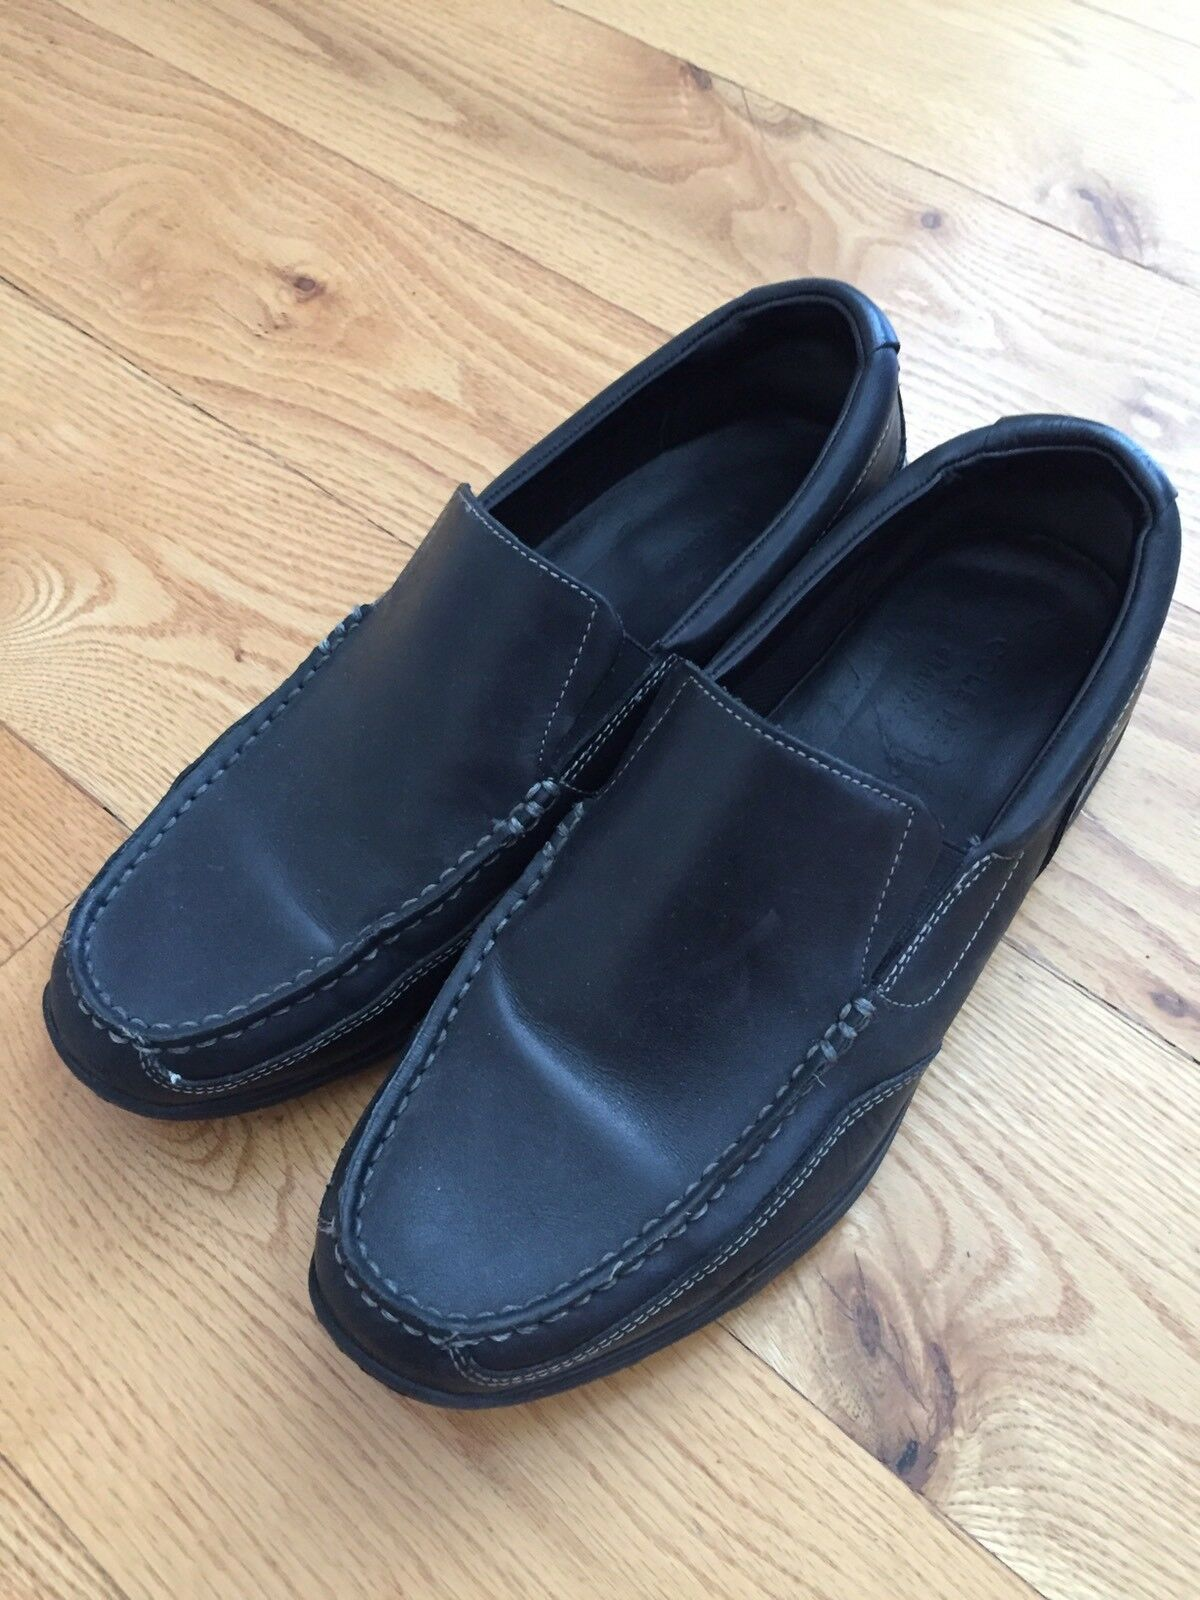 Cole Haan Mens Black Grand.OS Slip On Business Casual Loafers Dress Shoes 8.5